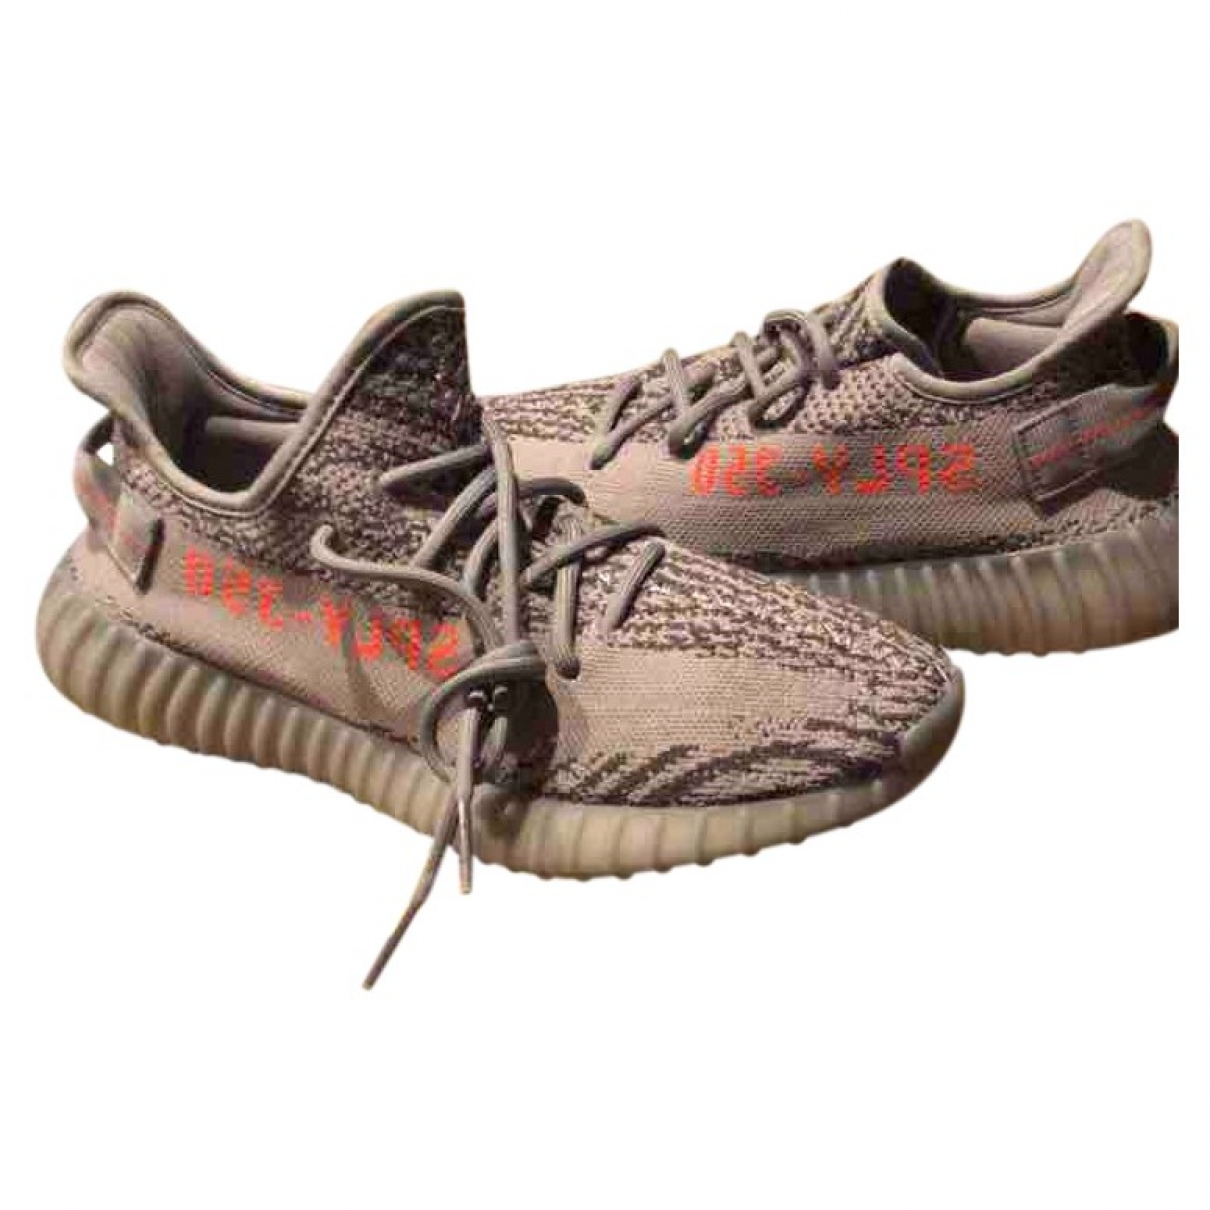 Yeezy X Adidas Boost 350 V2 Grey Cloth Trainers for Men 9 US